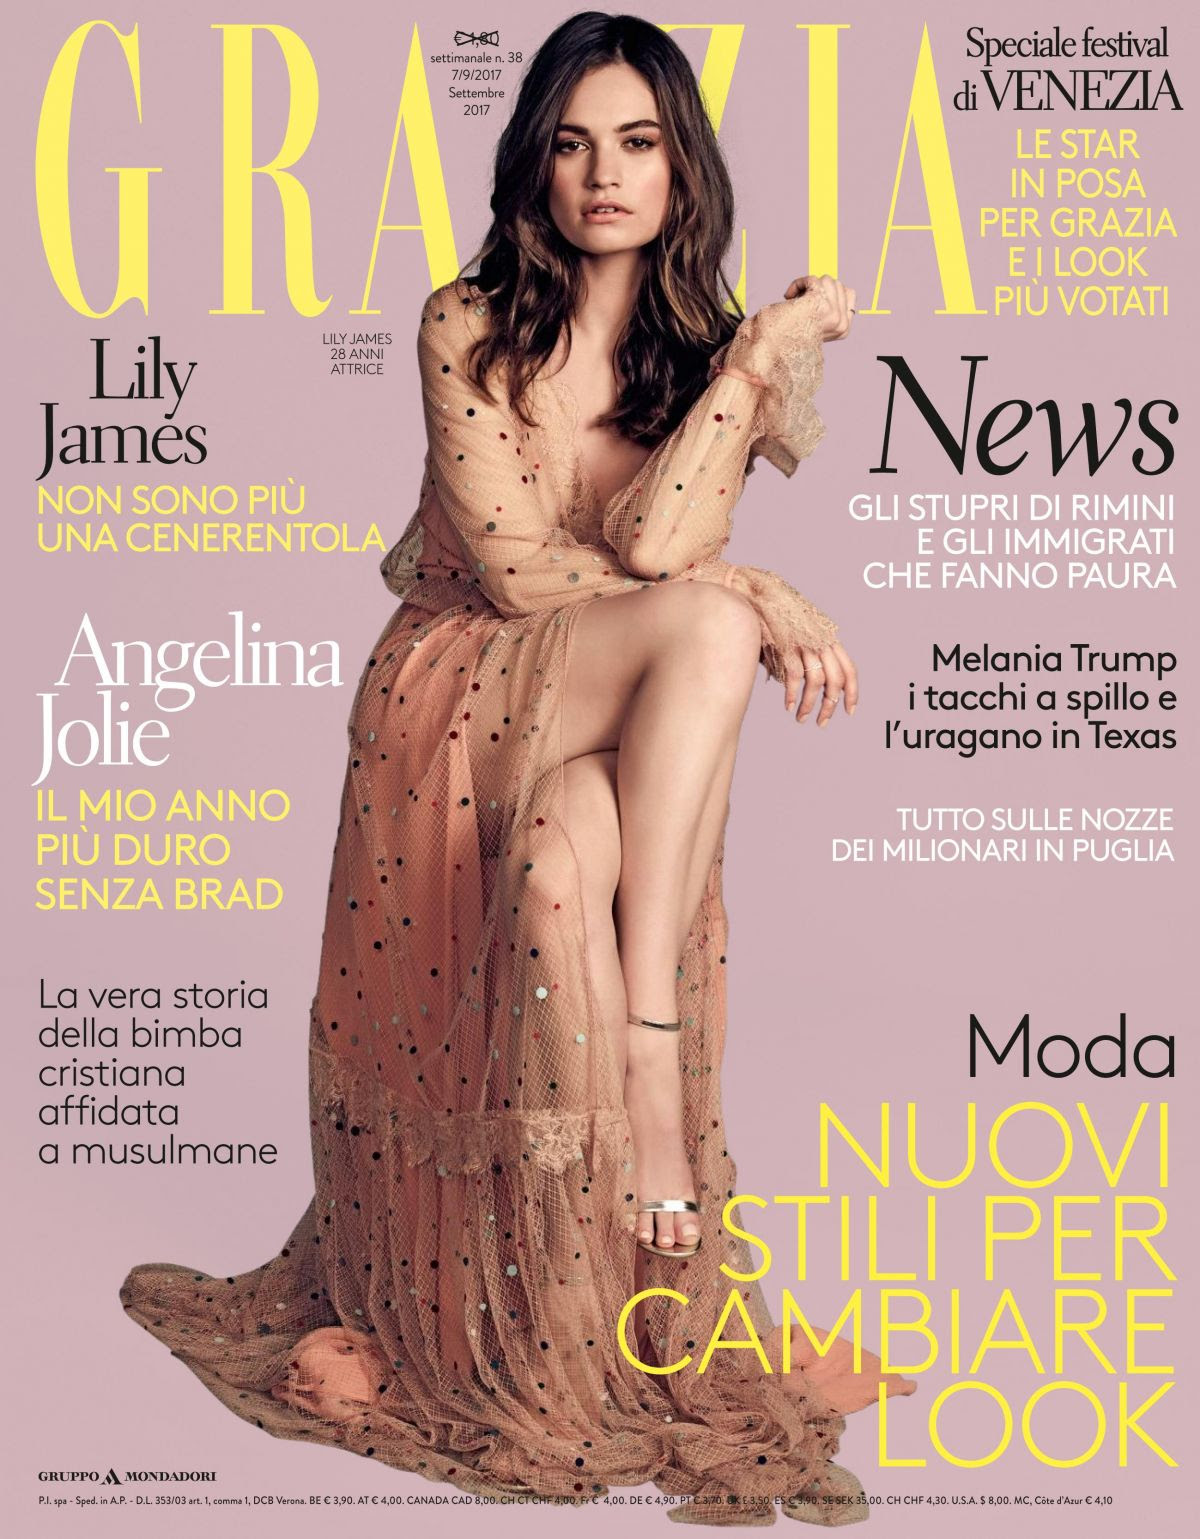 LILY JAMES in Grazia Magazine, Italy September 2917